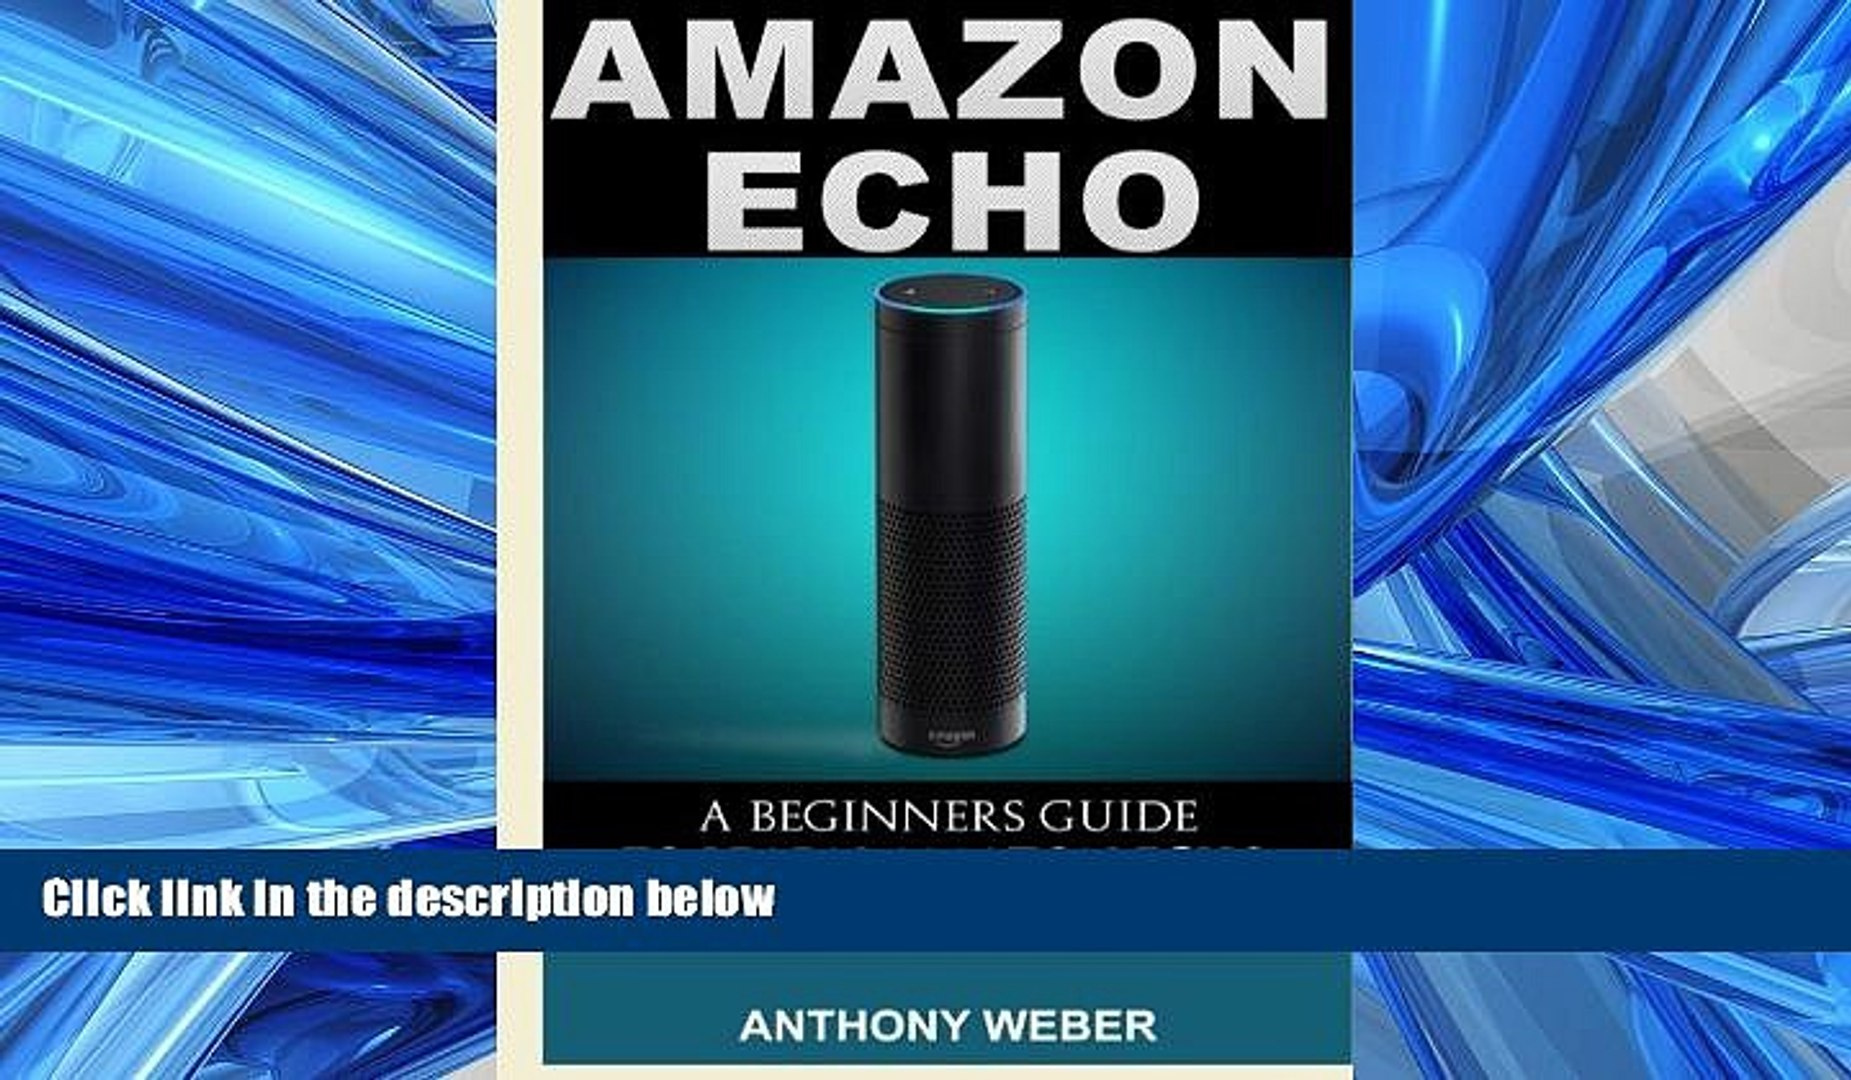 Choose Book Amazon Echo: 3 in 1. Amazon Echo, Amazon Prime and Kindle Lending Library. The